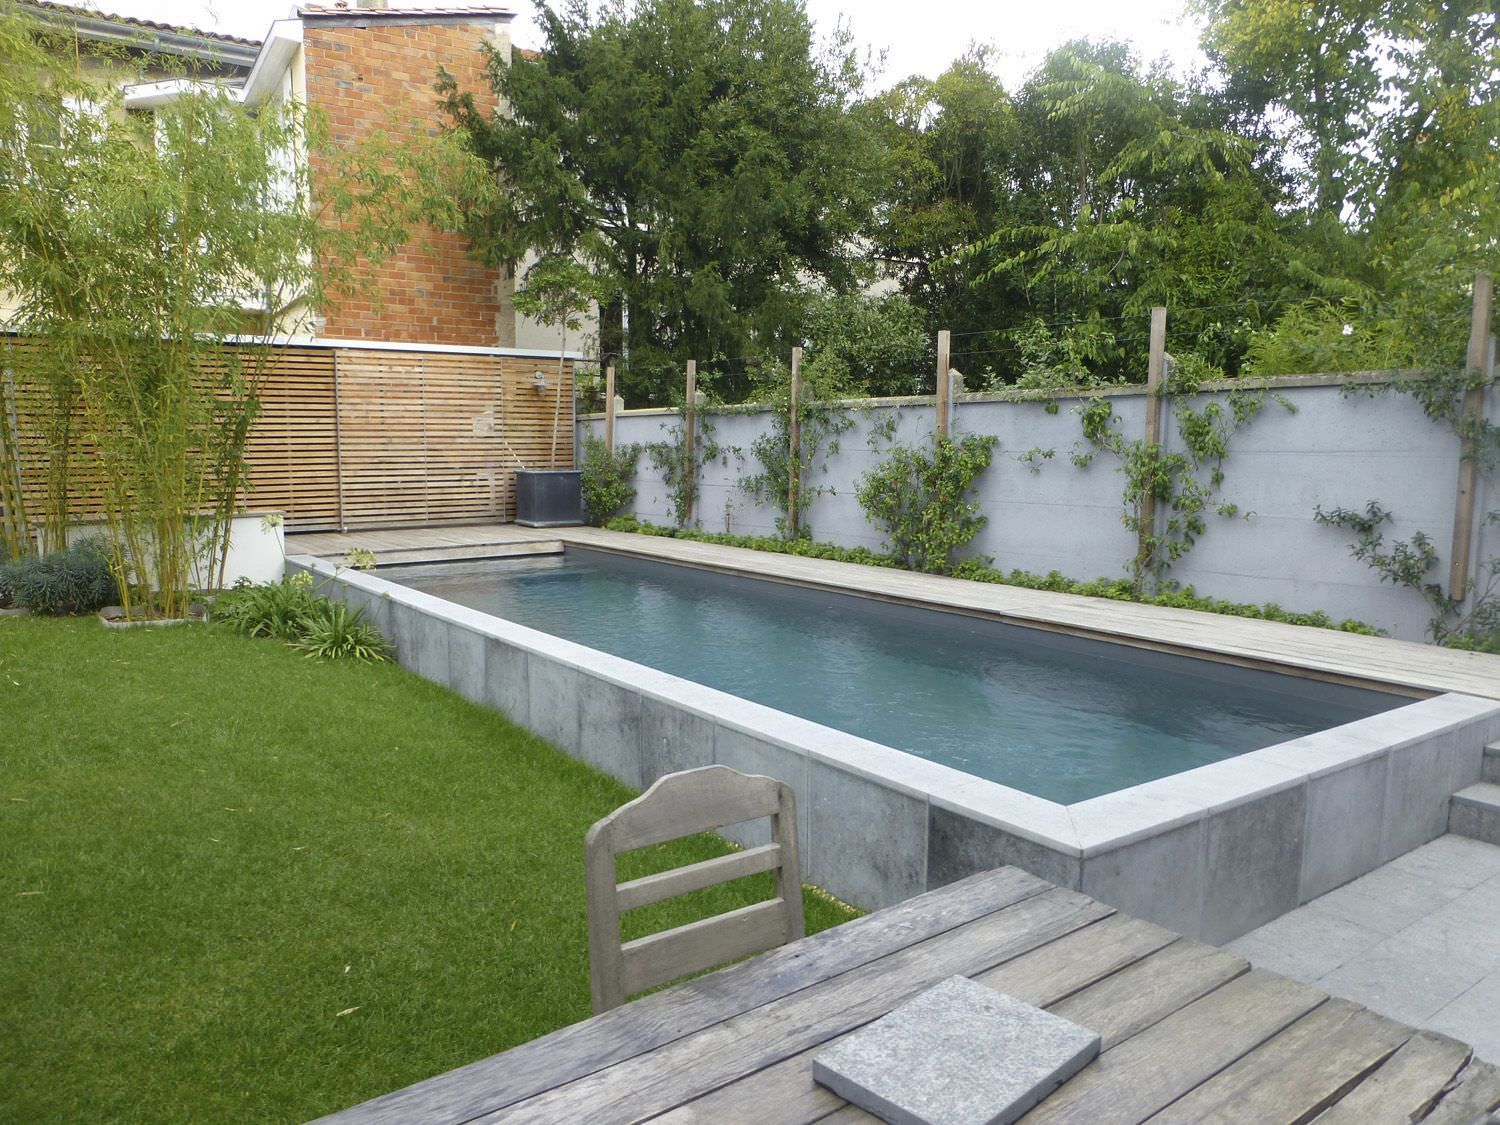 Piscine semi enterr e en b ton plouf pinterest for Piscine en teck semi enterree